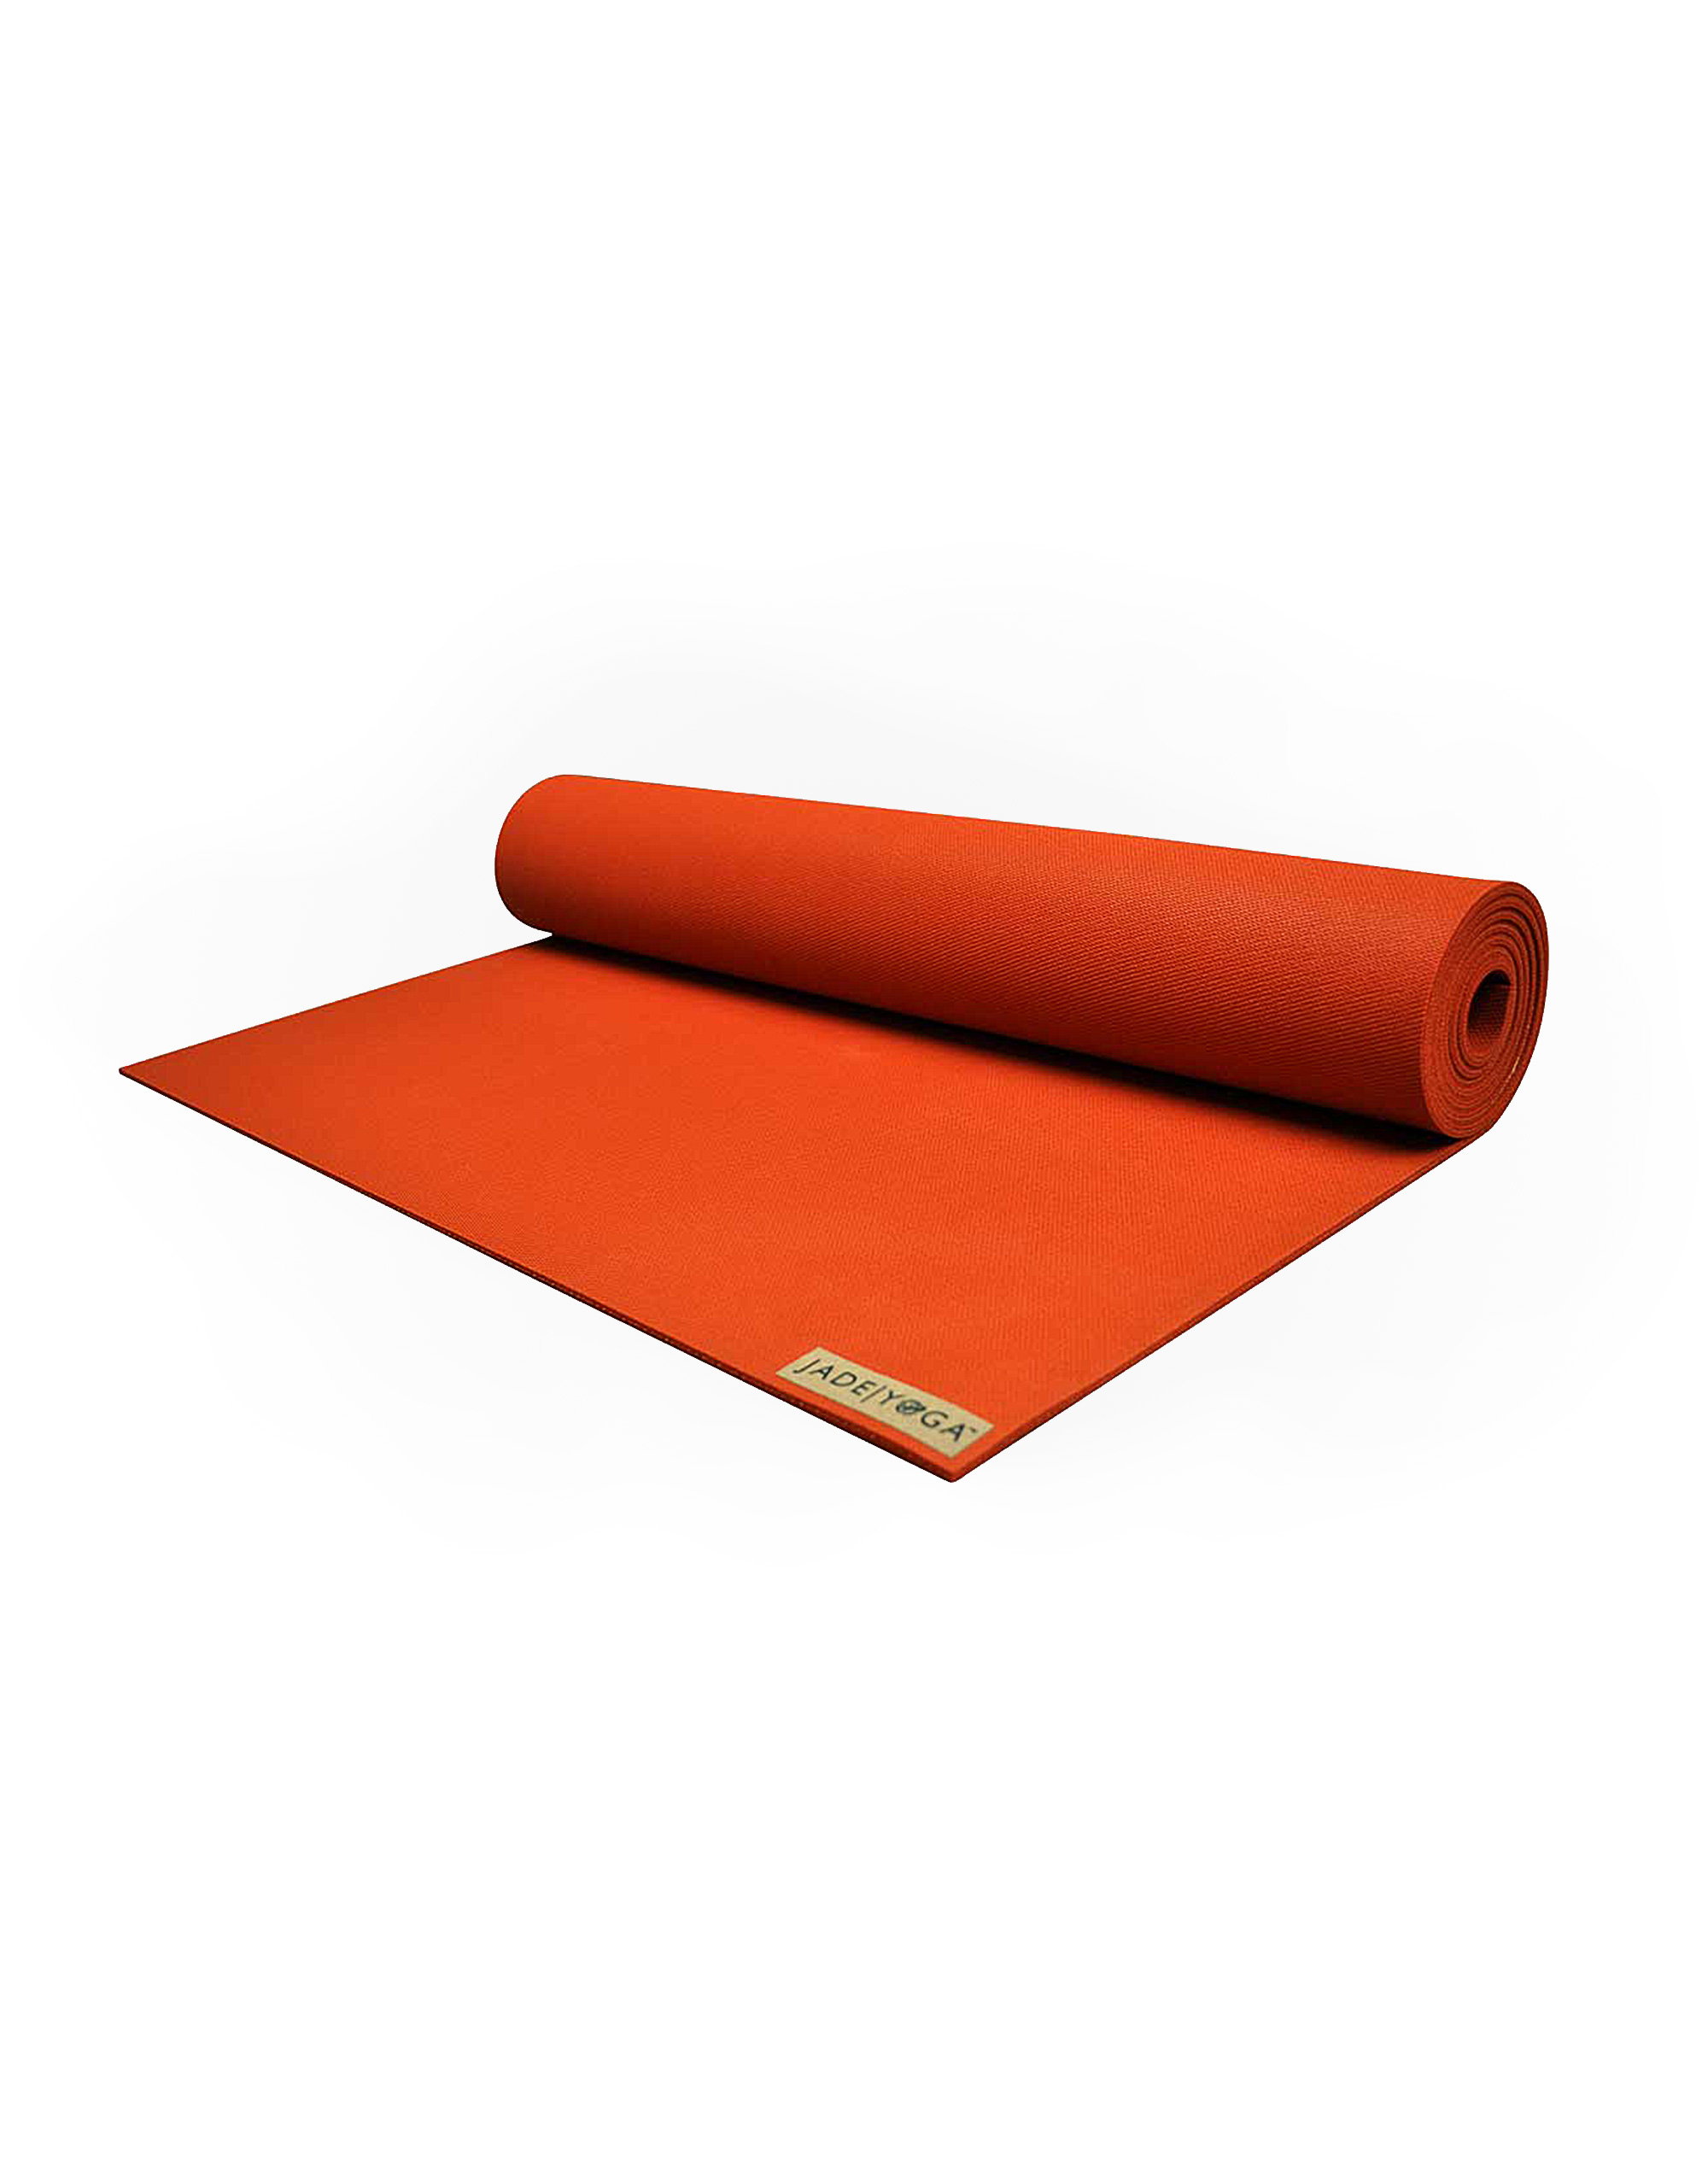 large kitchen blue mats cheap handle yoga at in proworks pw and carry with accessories thick homeware mat savisto padded